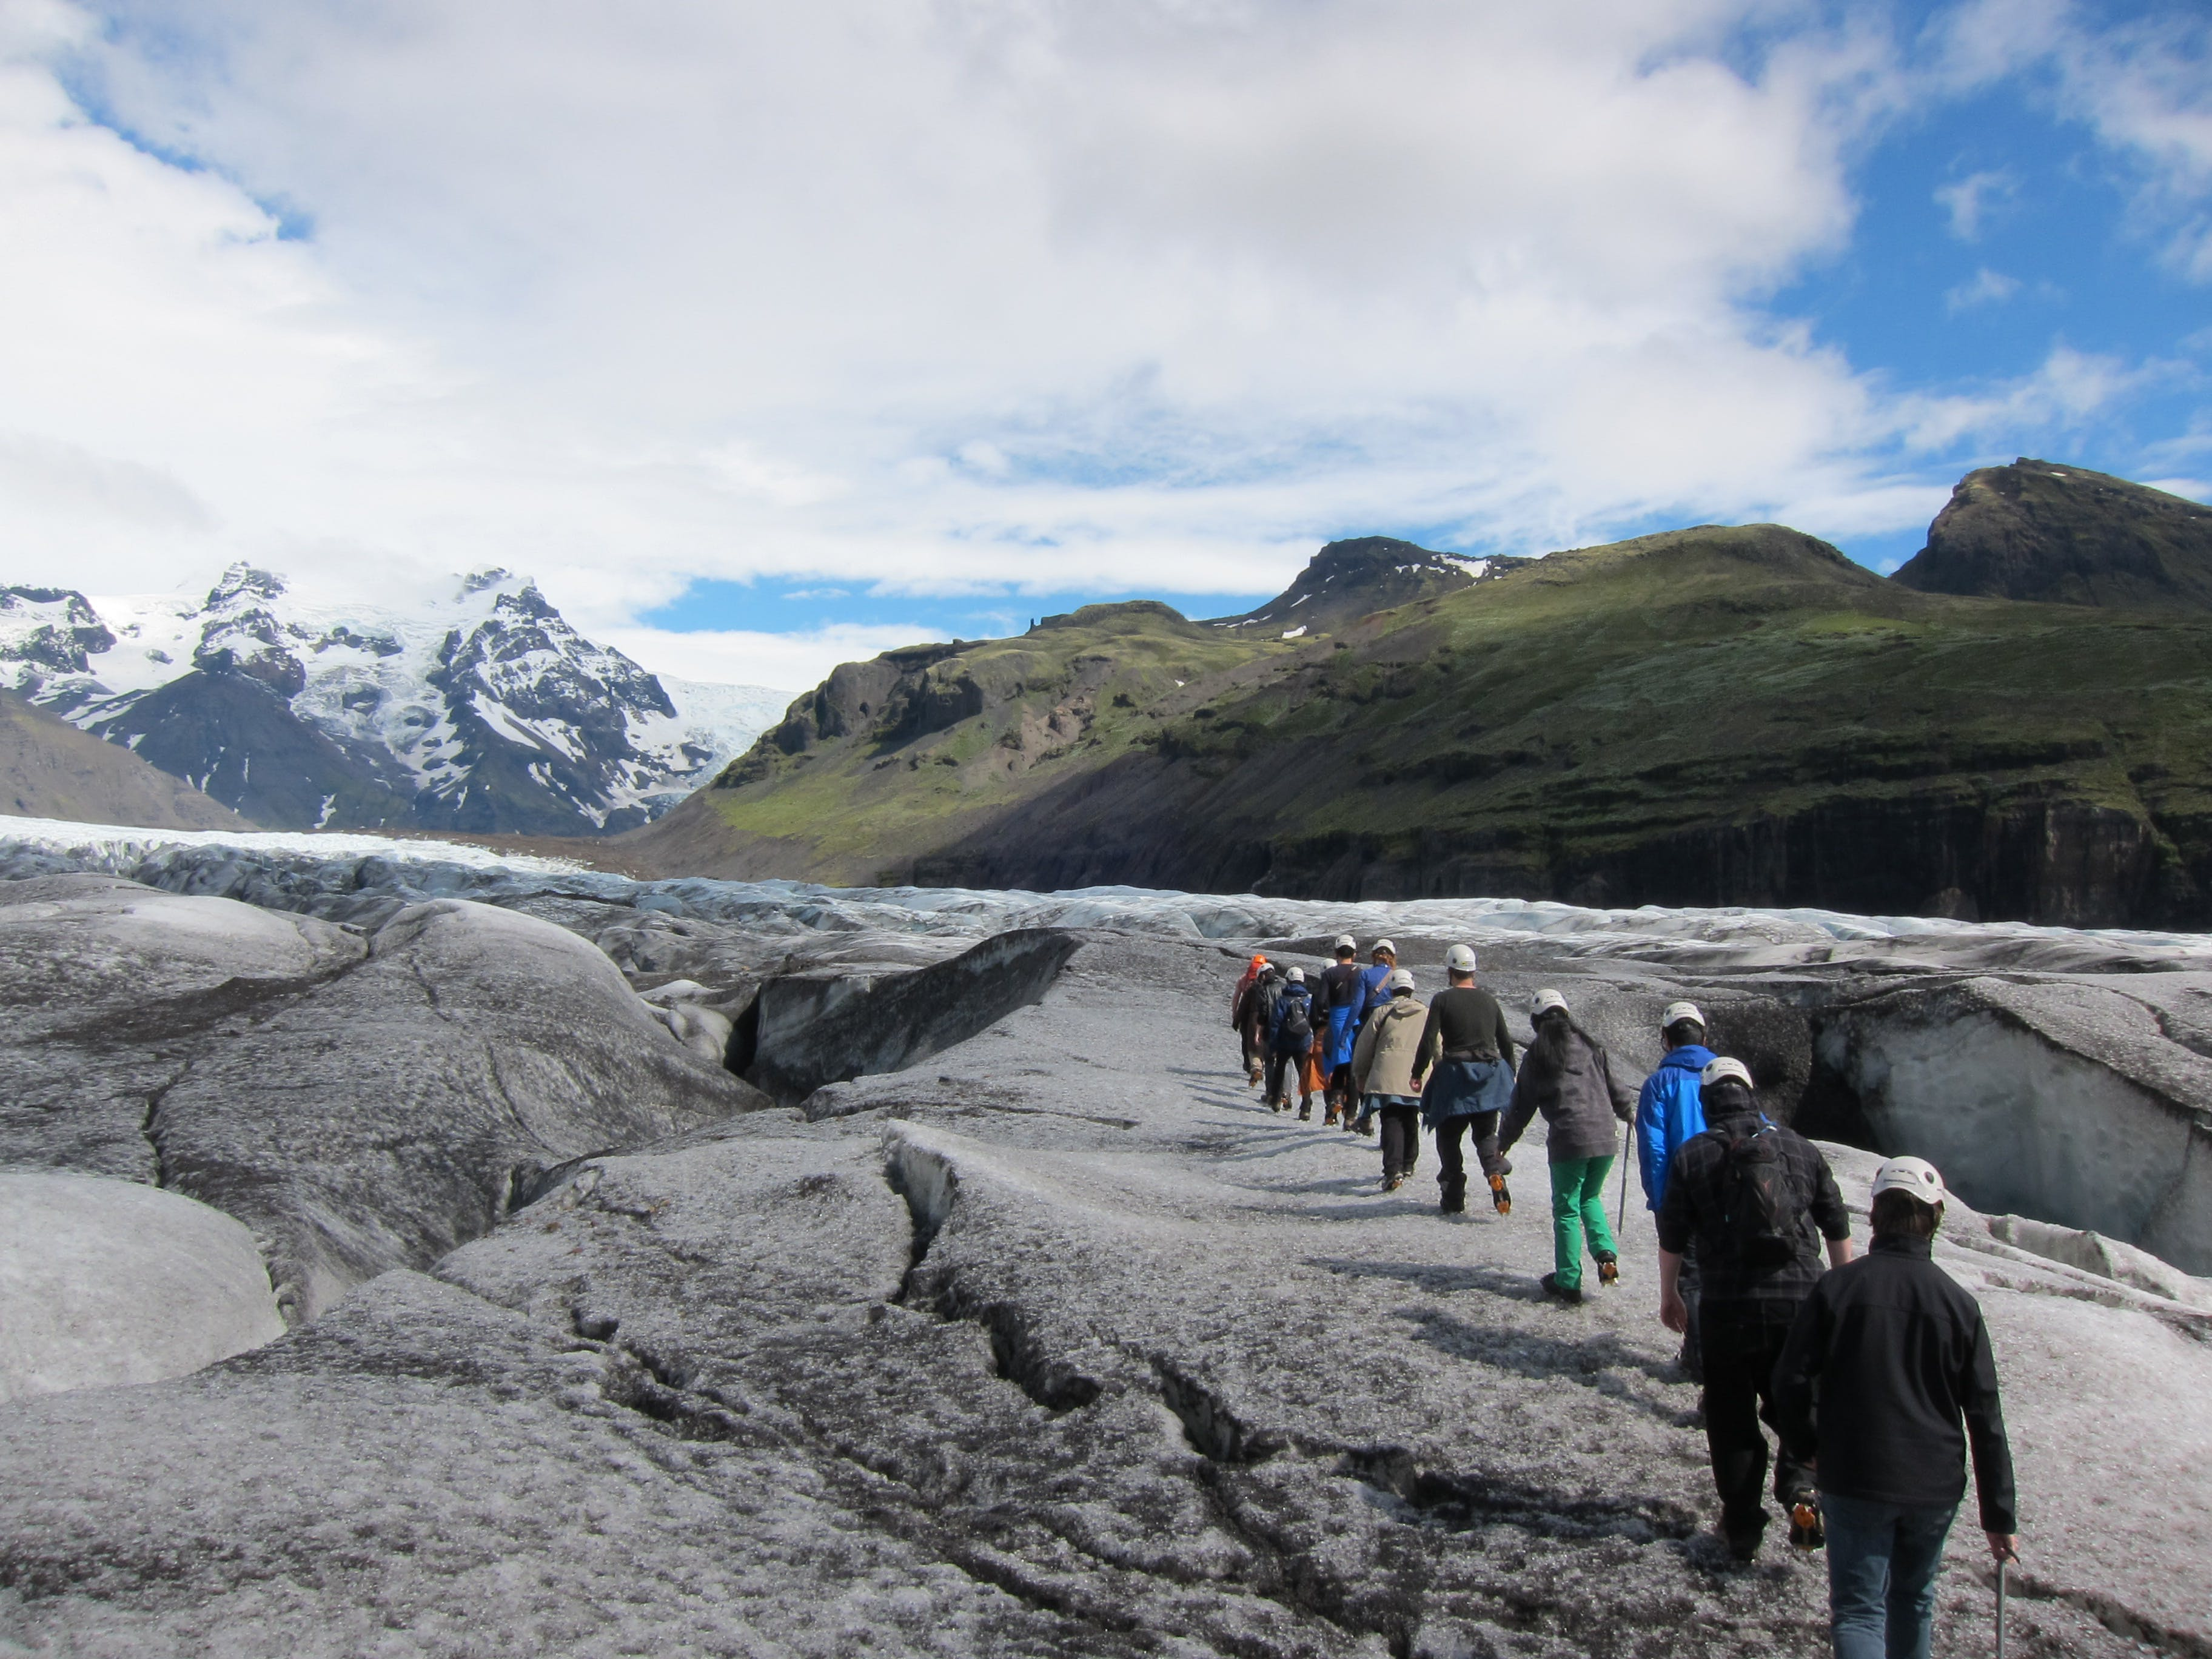 Glacier hikers on Svínafellsjökull, striding from Skaftafell Nature Reserve towards the mighty Vatnajökull.